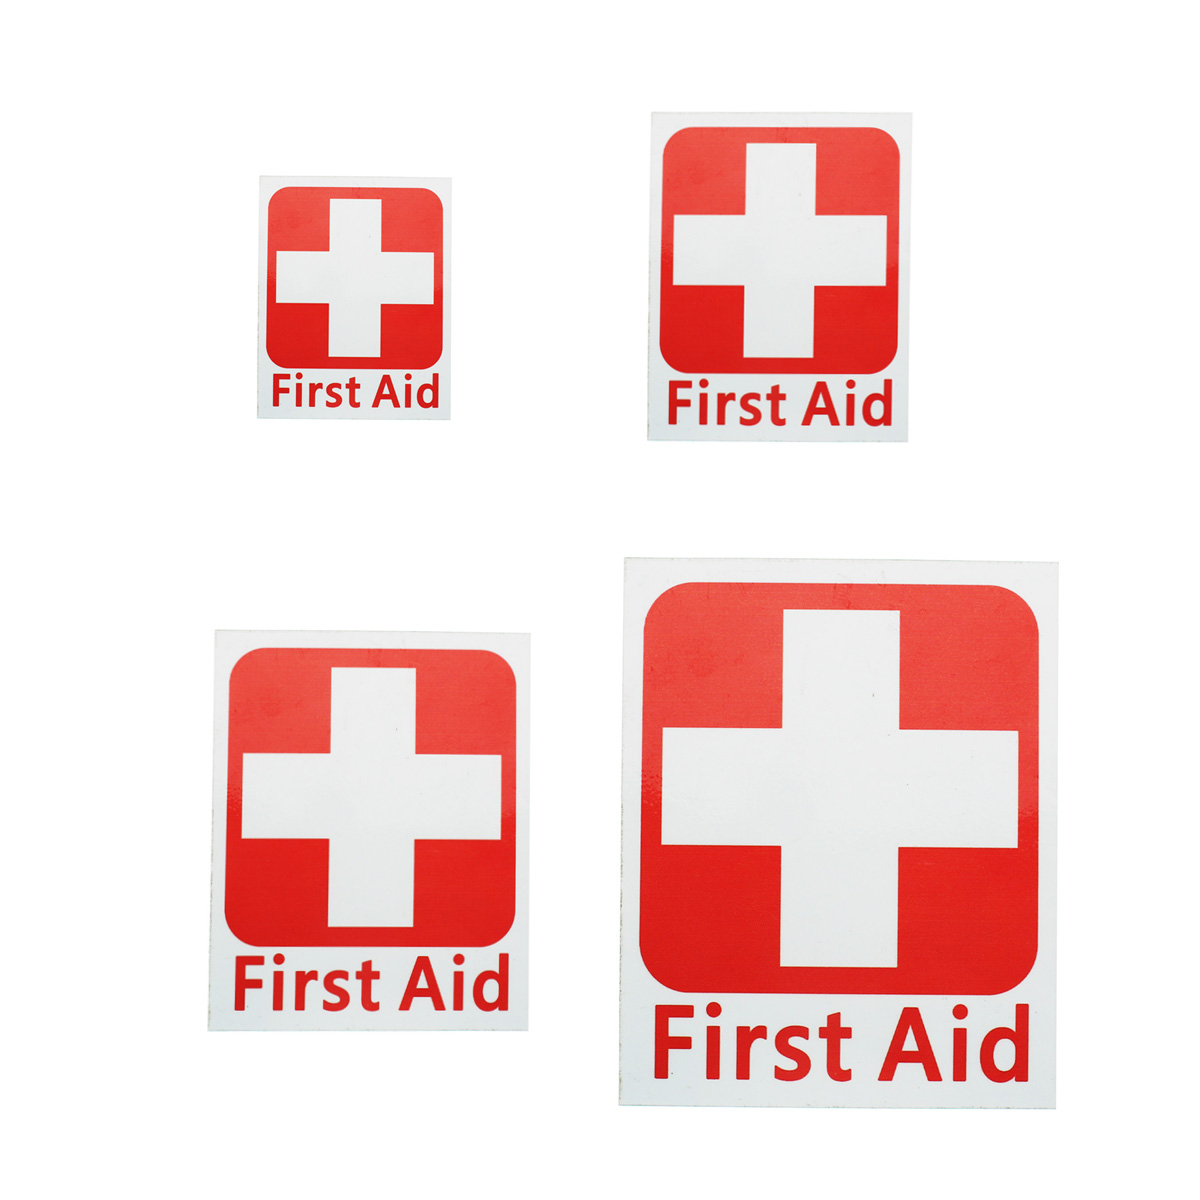 Safurance 4 Size FIRST AID Vinyl Sticker Label Waterproof Signs Red Cross Health Safety Emergency Kits WarningSafurance 4 Size FIRST AID Vinyl Sticker Label Waterproof Signs Red Cross Health Safety Emergency Kits Warning